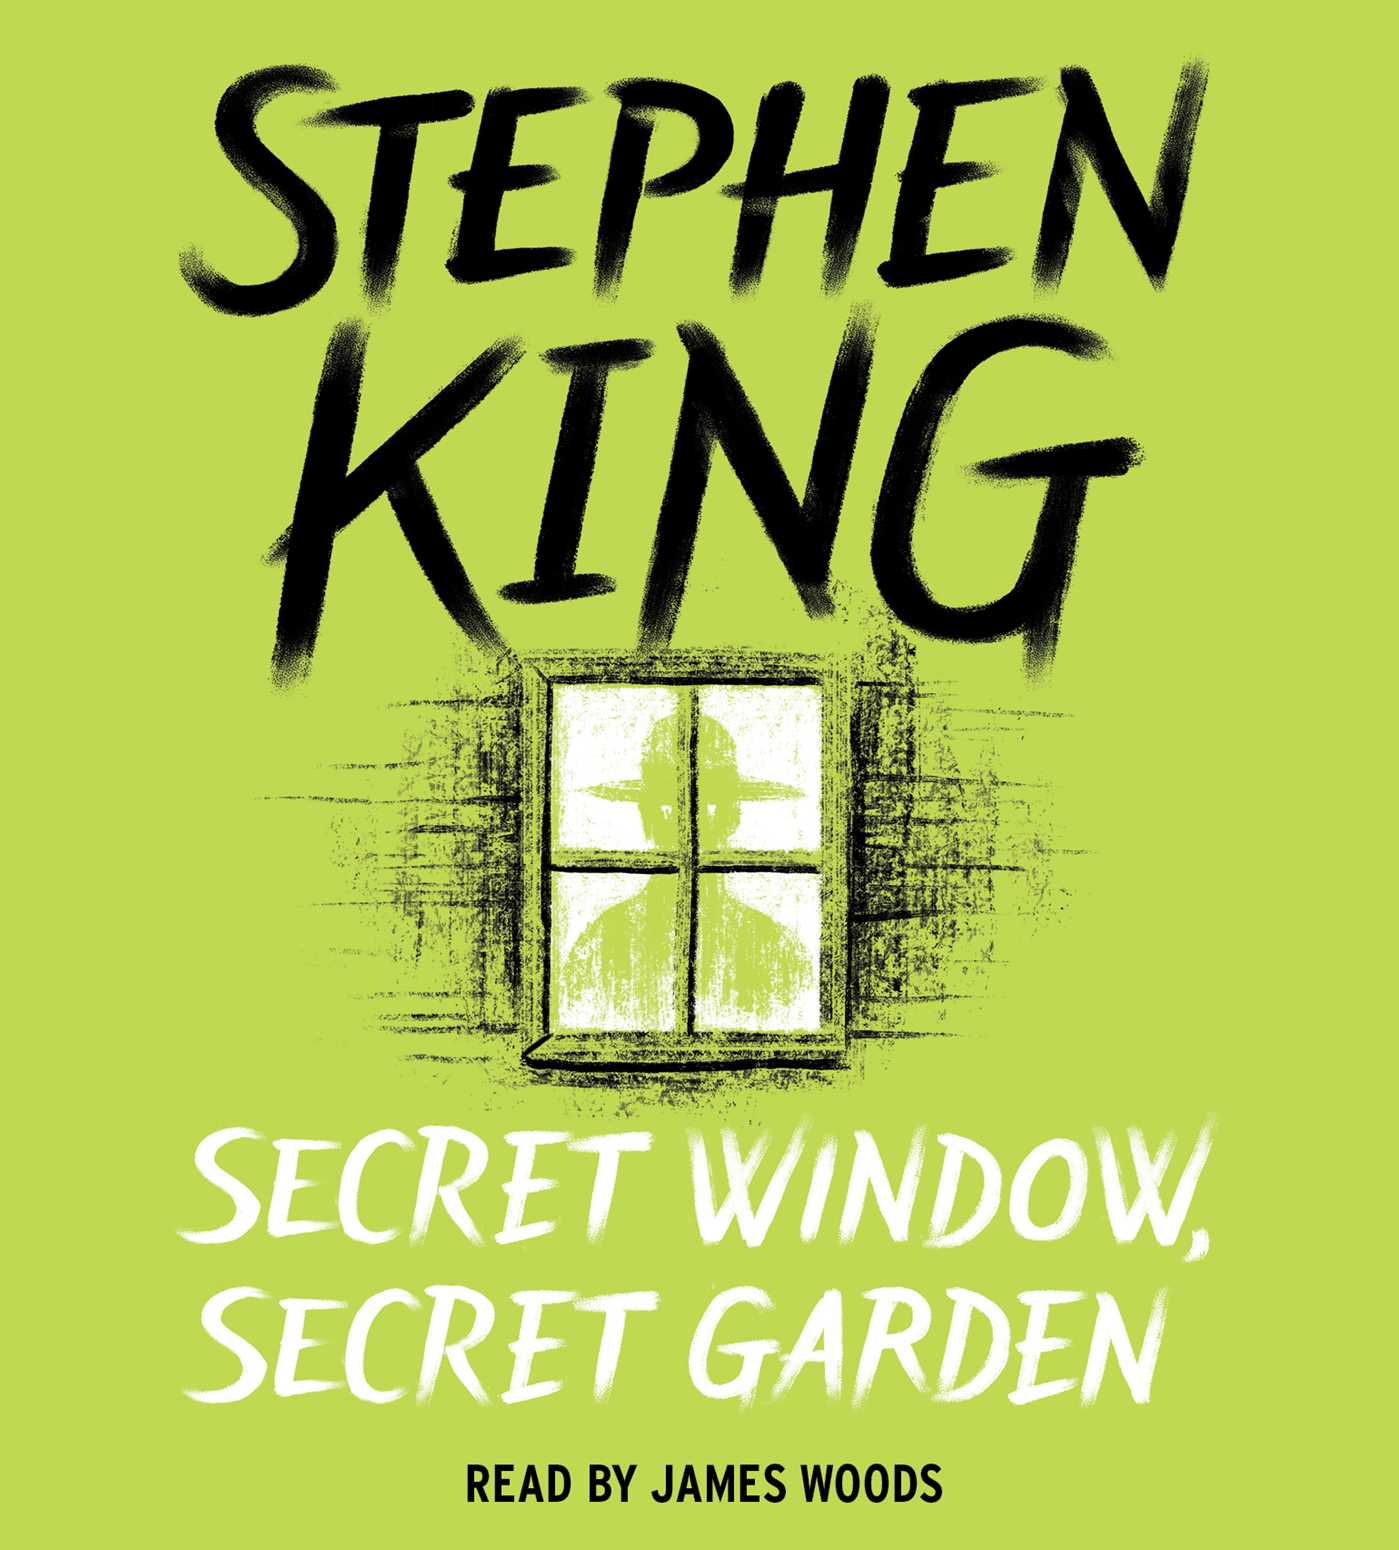 Book Cover Image (jpg): Secret Window, Secret Garden Great Pictures